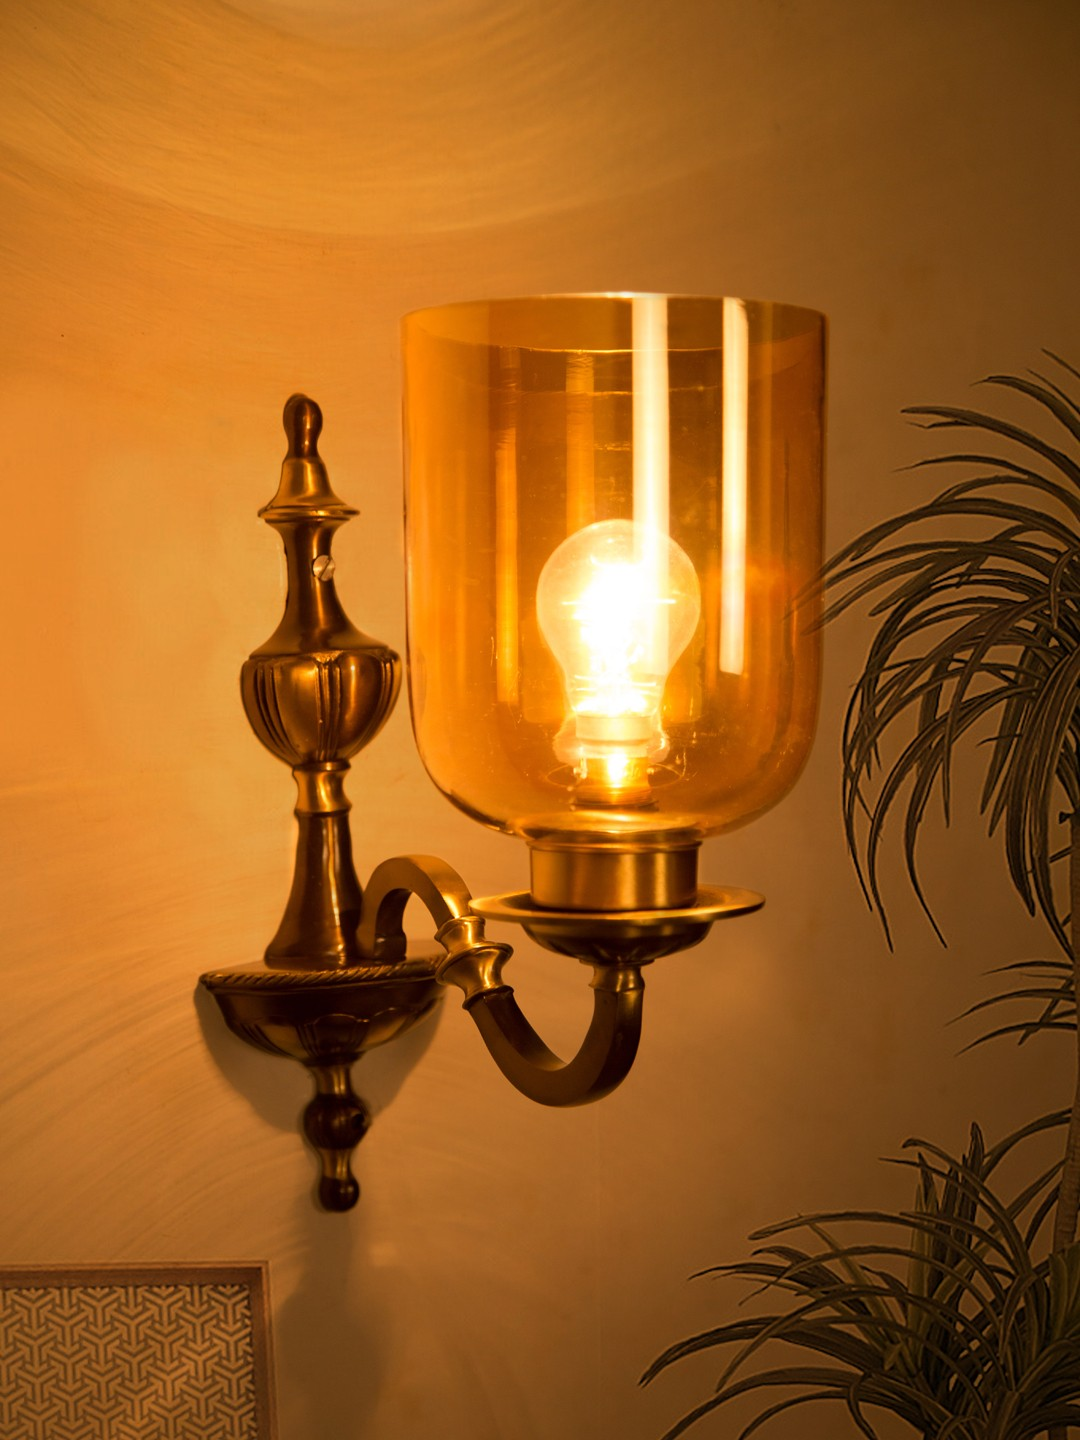 Fos Lighting Golden Luster Hurricane Classic Single Wall Sconce